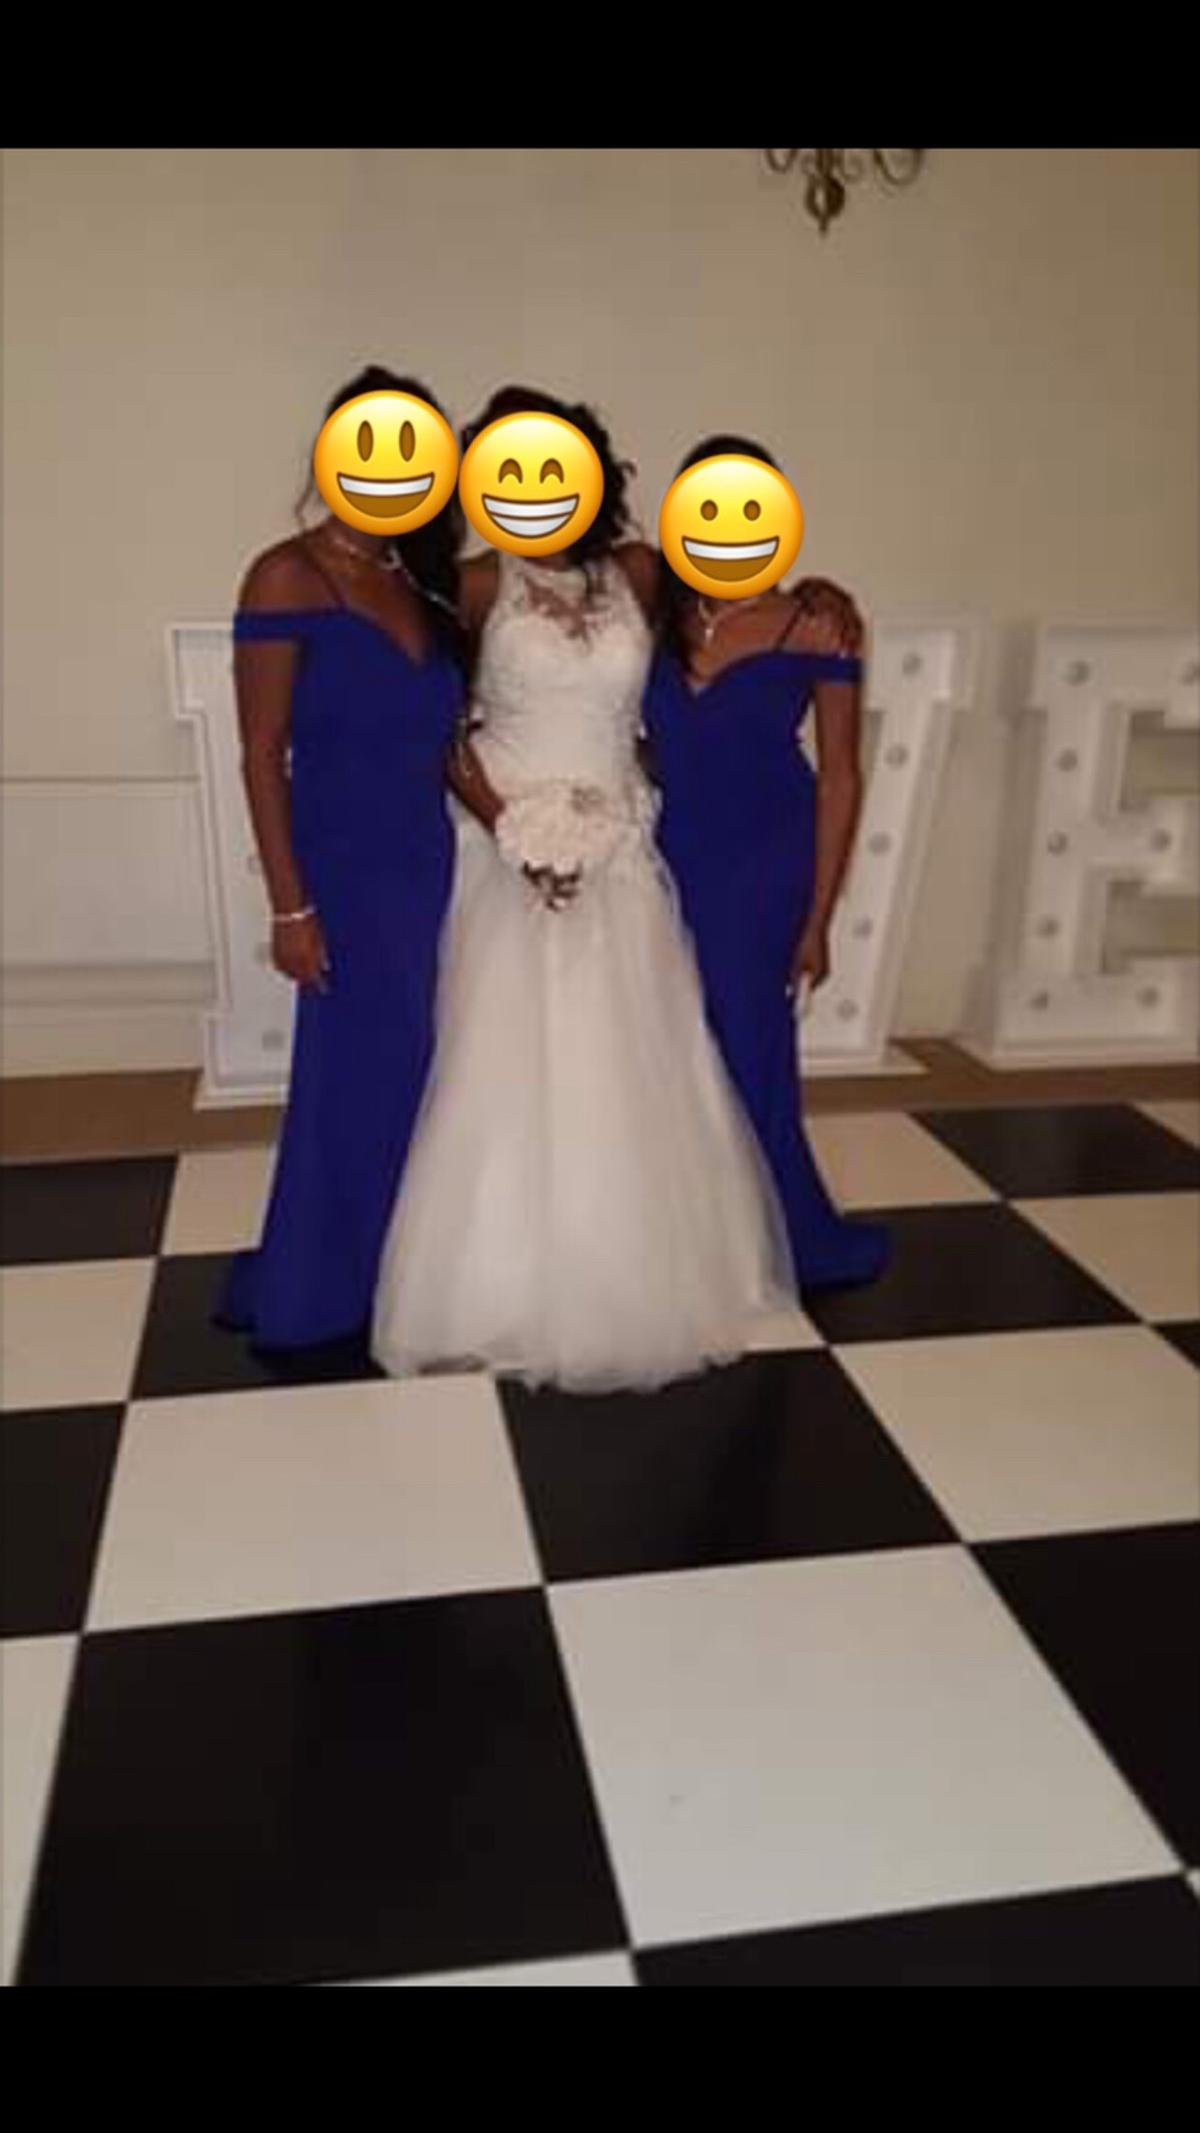 Bridesmaid Royal Blue Maxi Dress In B23 Birmingham For 20 00 For Sale Shpock